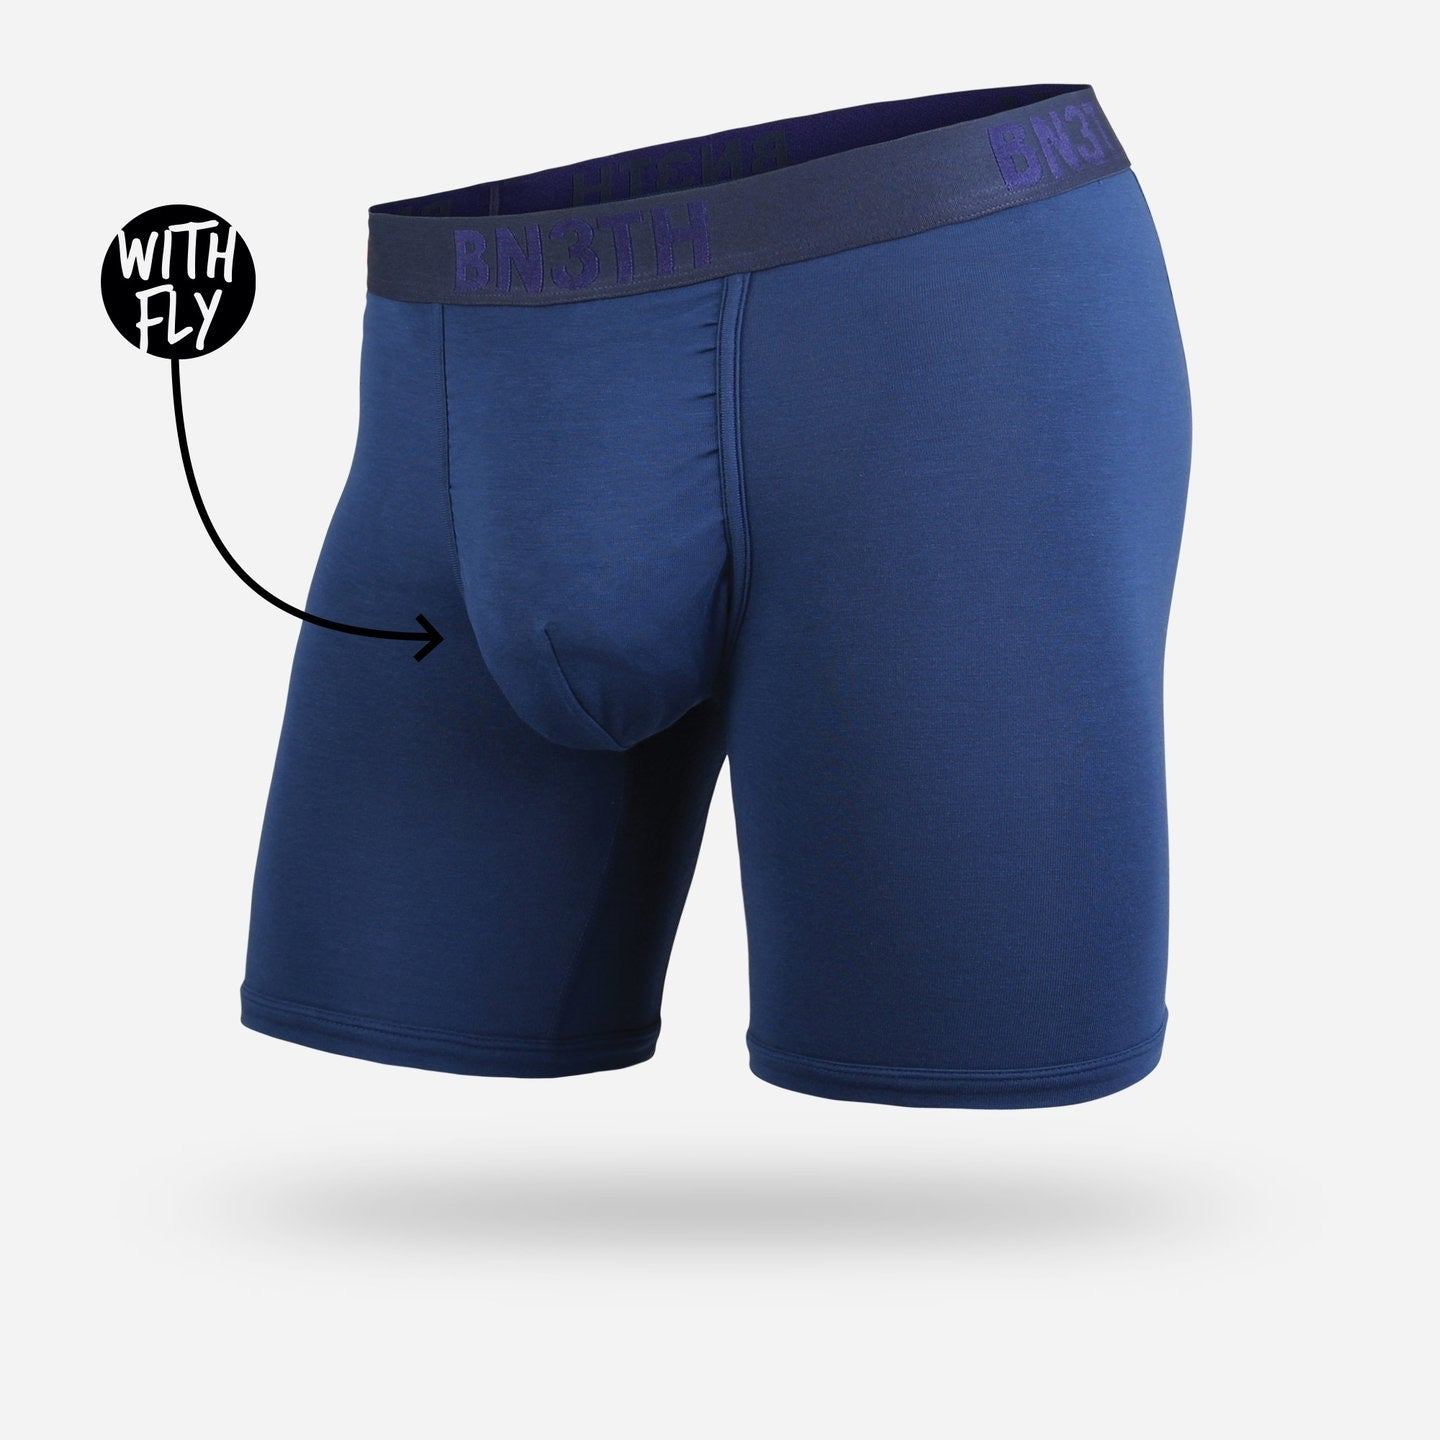 BN3TH BOXER BRIEF WITH FLY IN NAVY